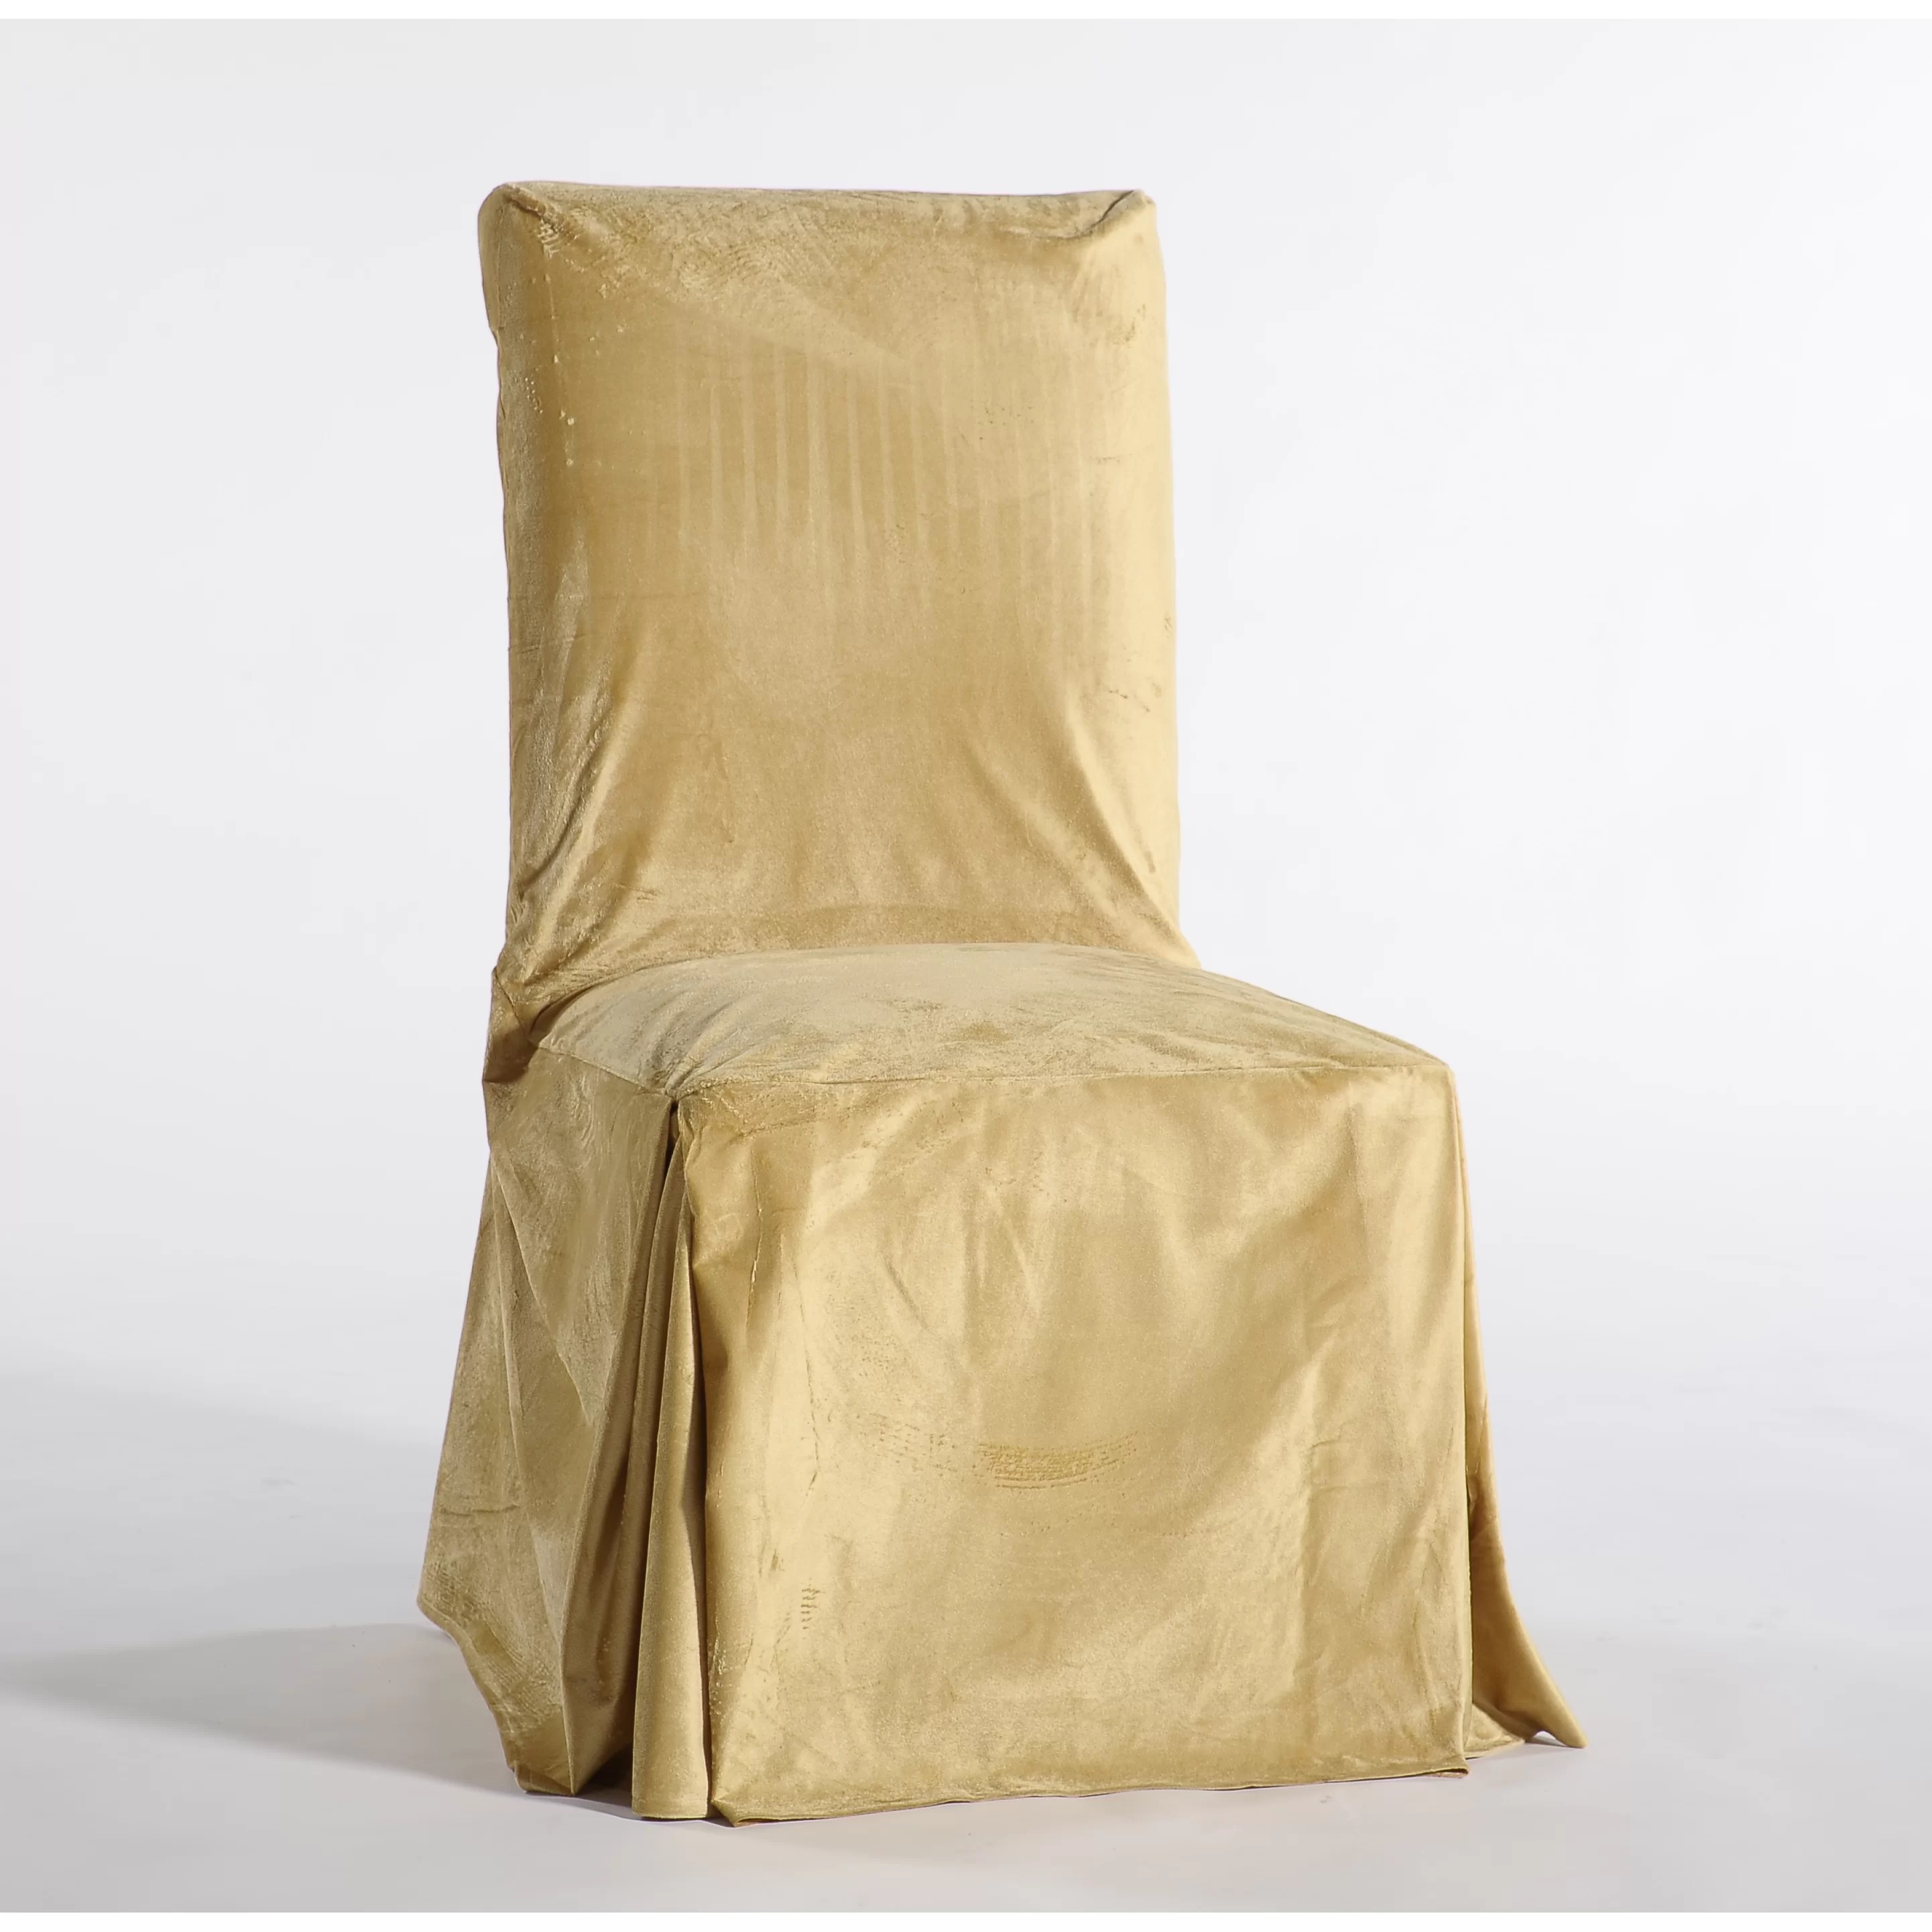 dining chair covers velvet heavy duty recliner lift chairs classic slipcovers royal skirted slipcover